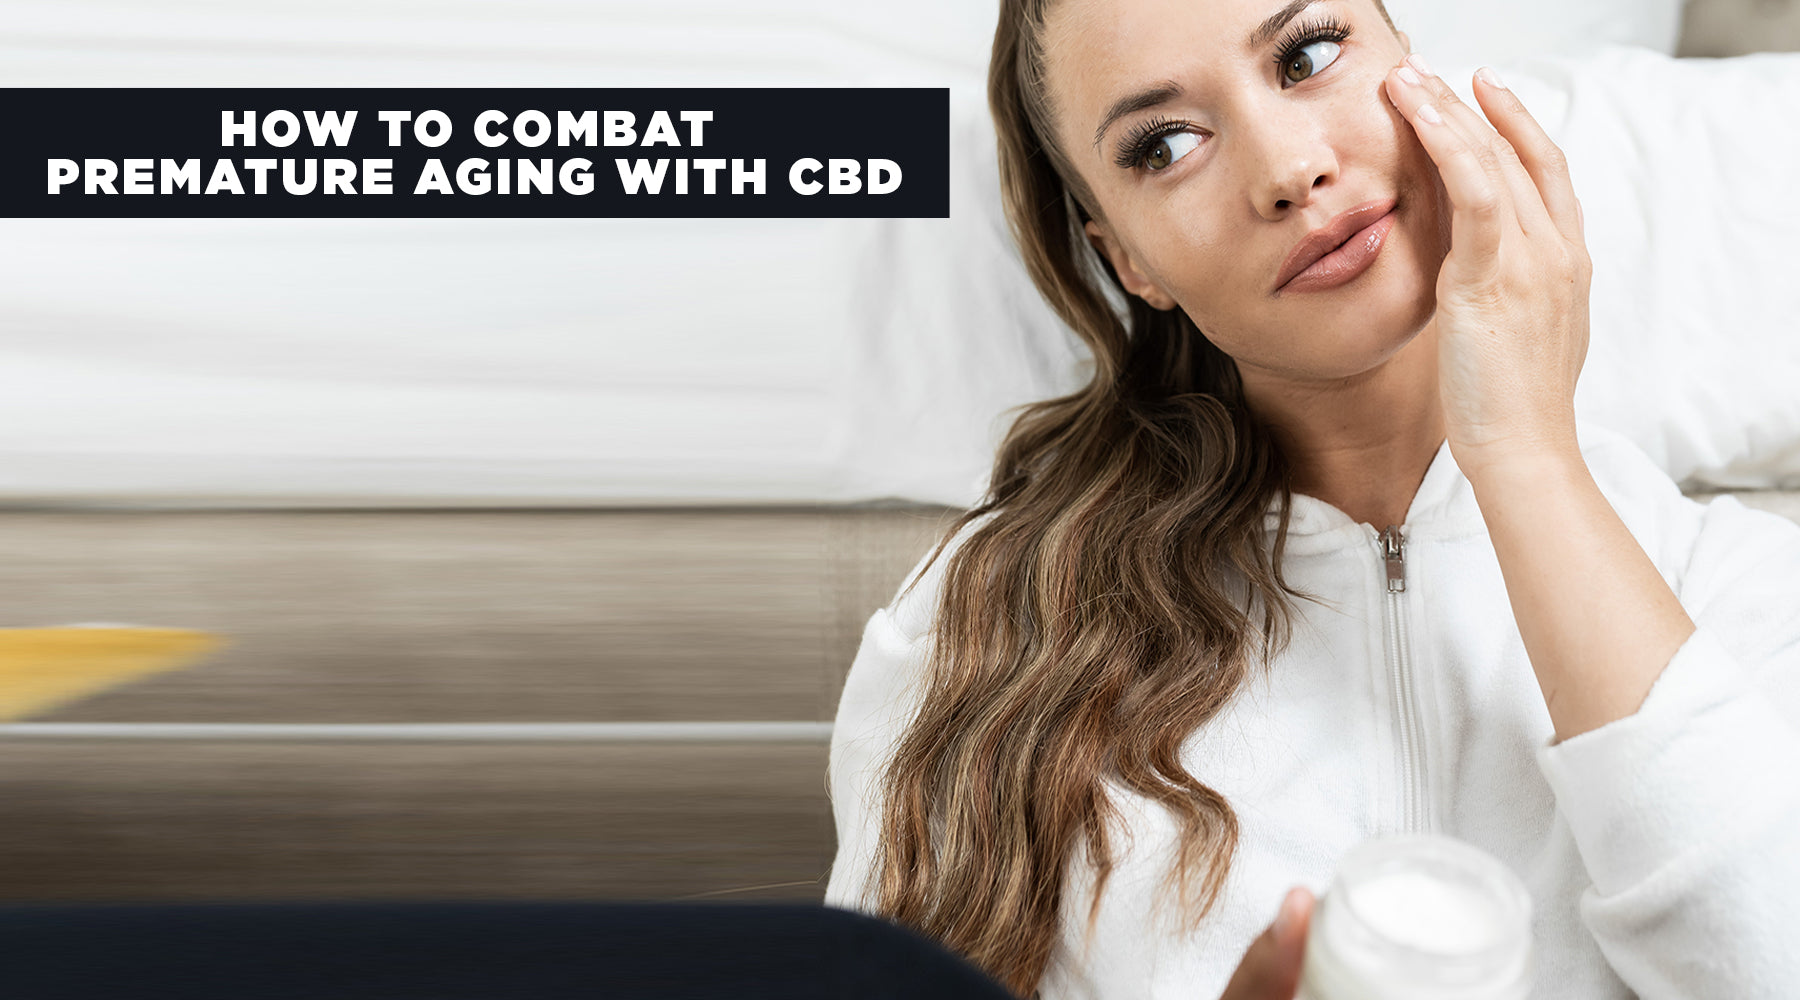 How to Combat Premature Aging with CBD